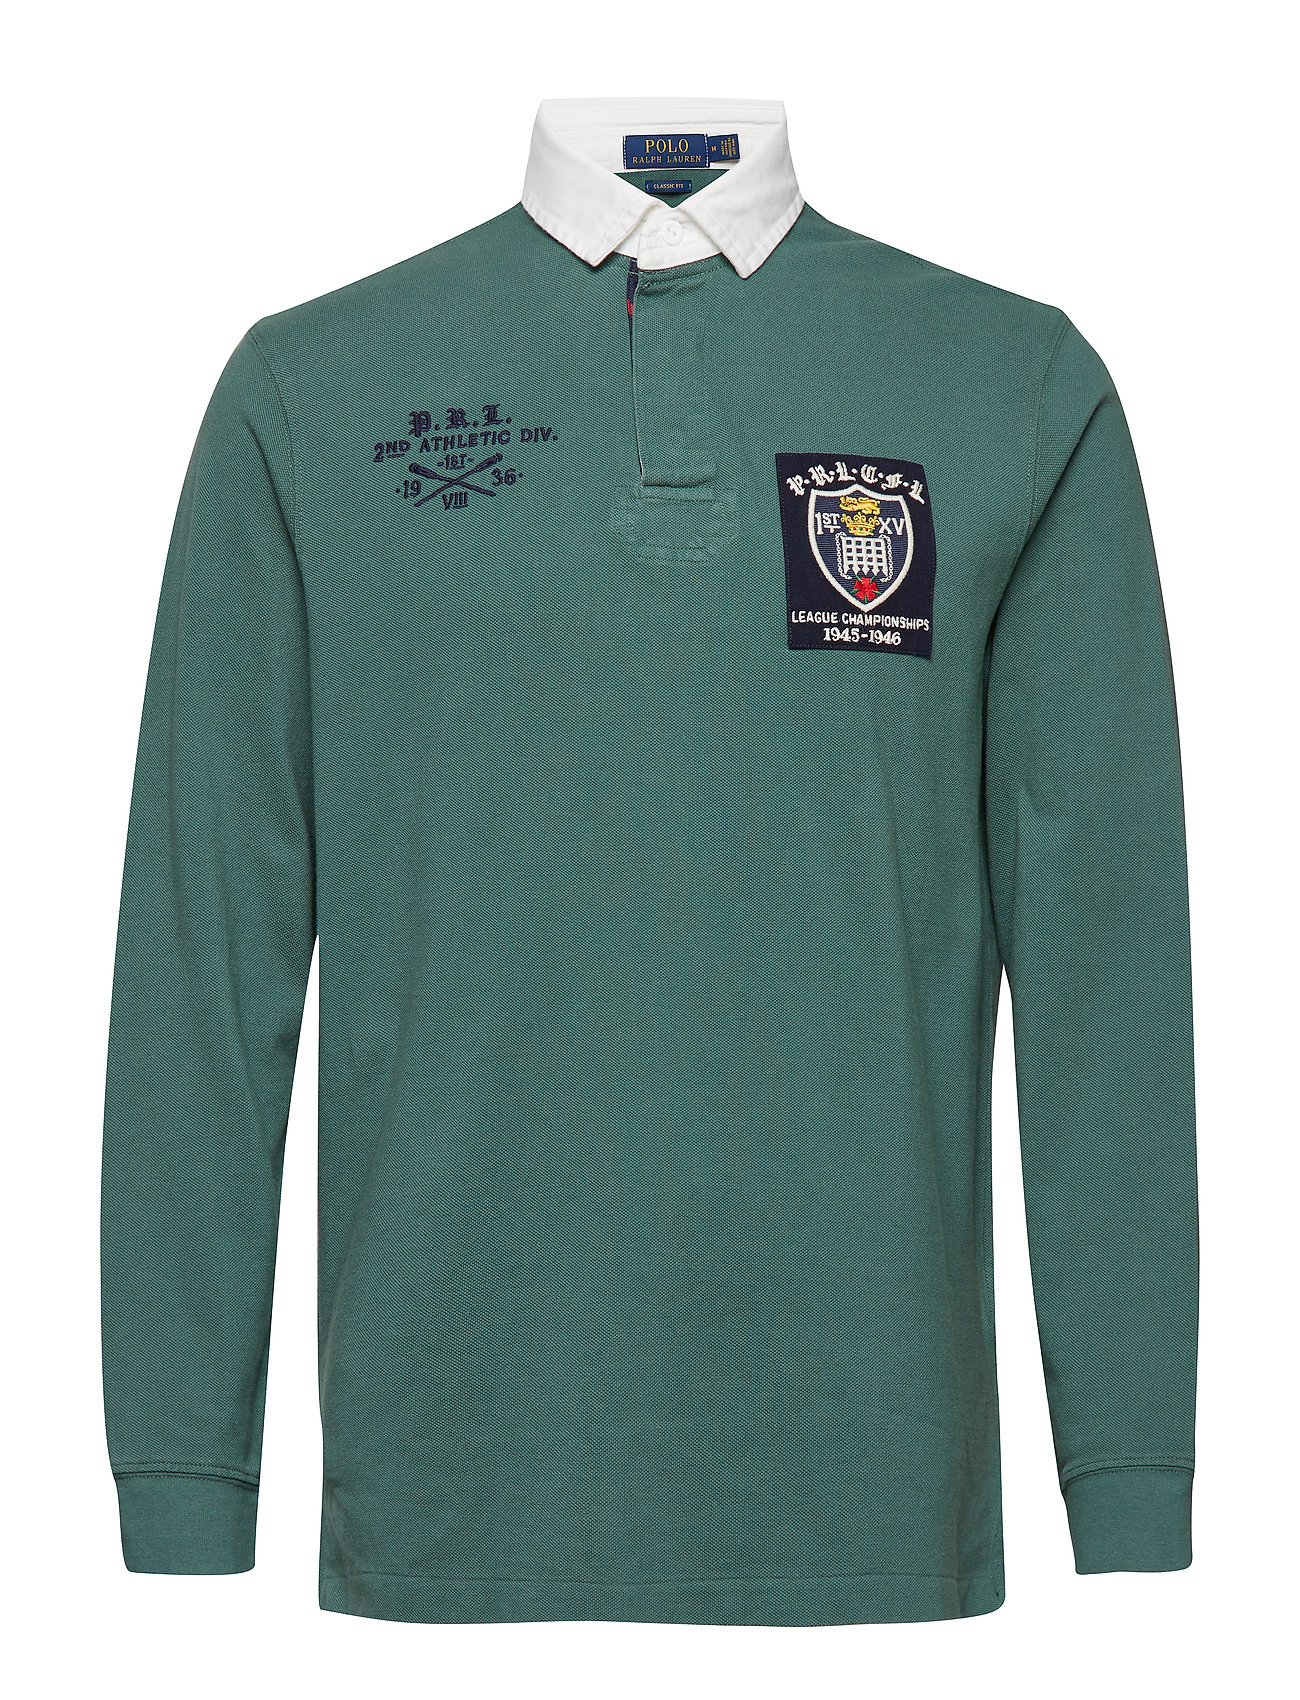 Polo Ralph Lauren Classic Fit Mesh Rugby Shirt - WASHED FOREST